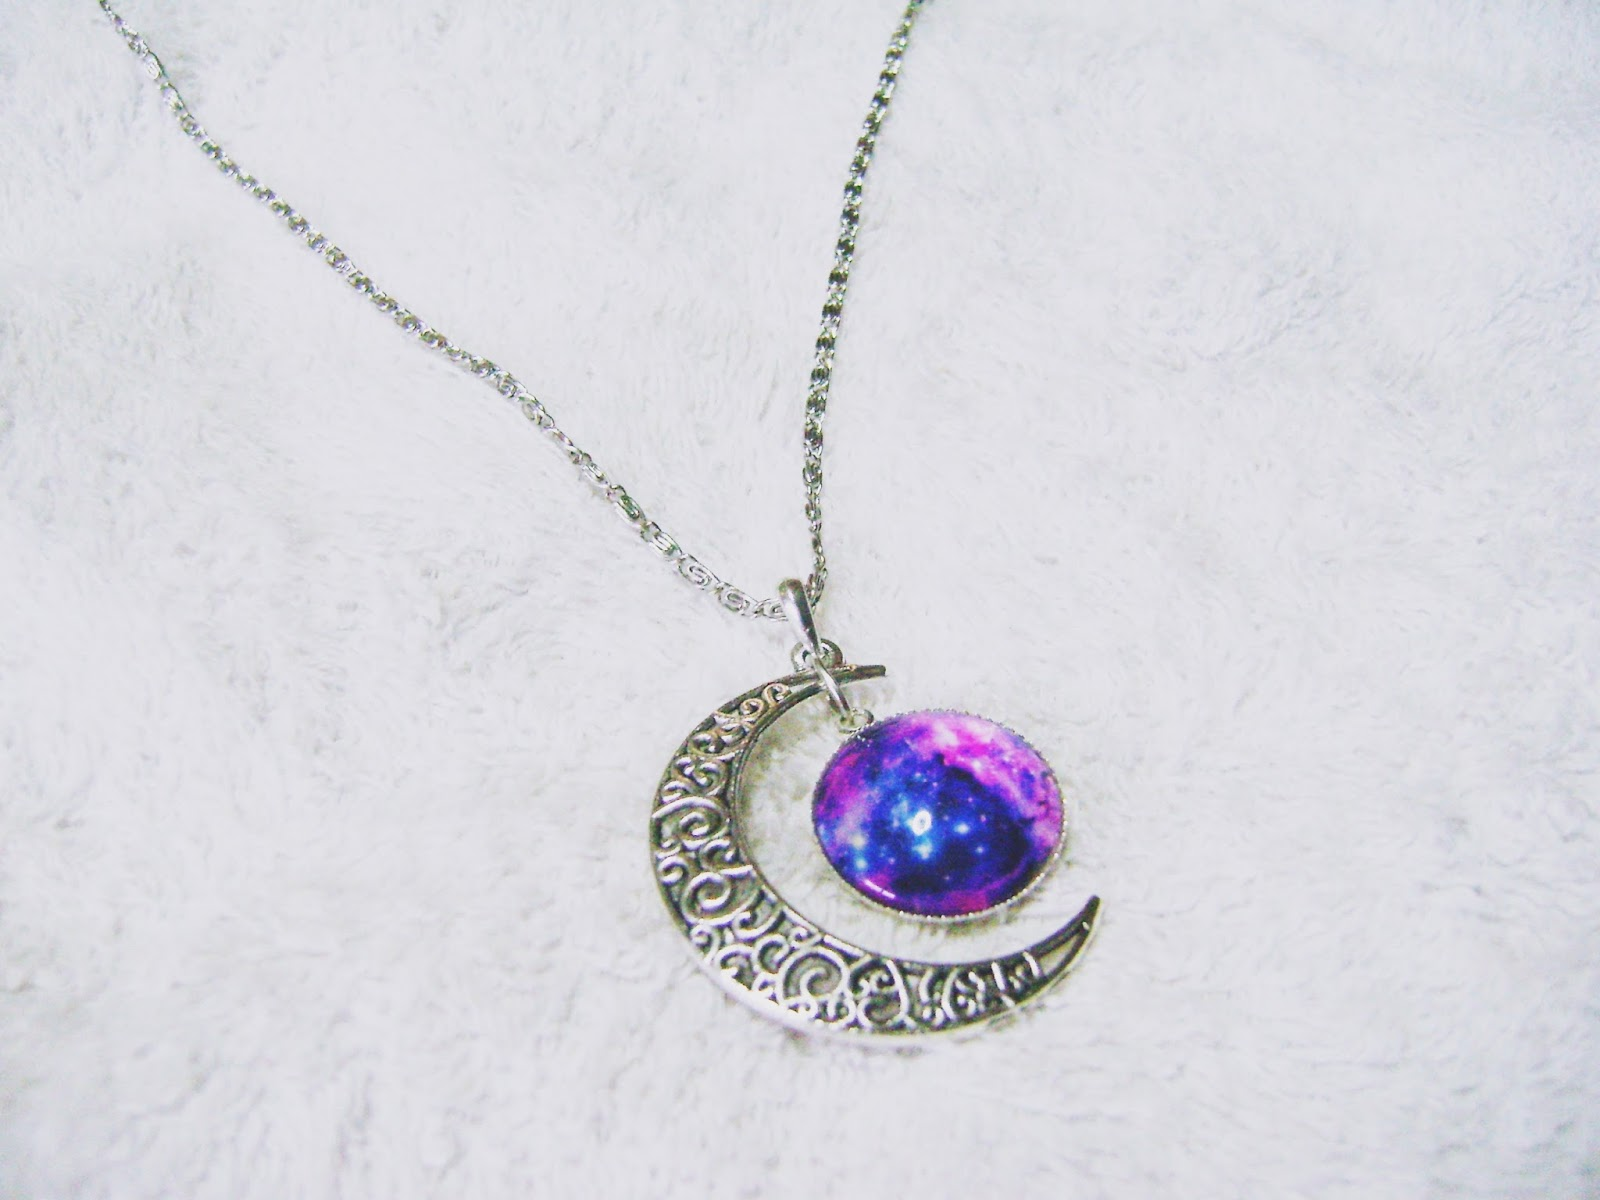 Product review starry sky moon gemstone pendant chain necklace from product review starry sky moon gemstone pendant chain necklace from born pretty aloadofball Images